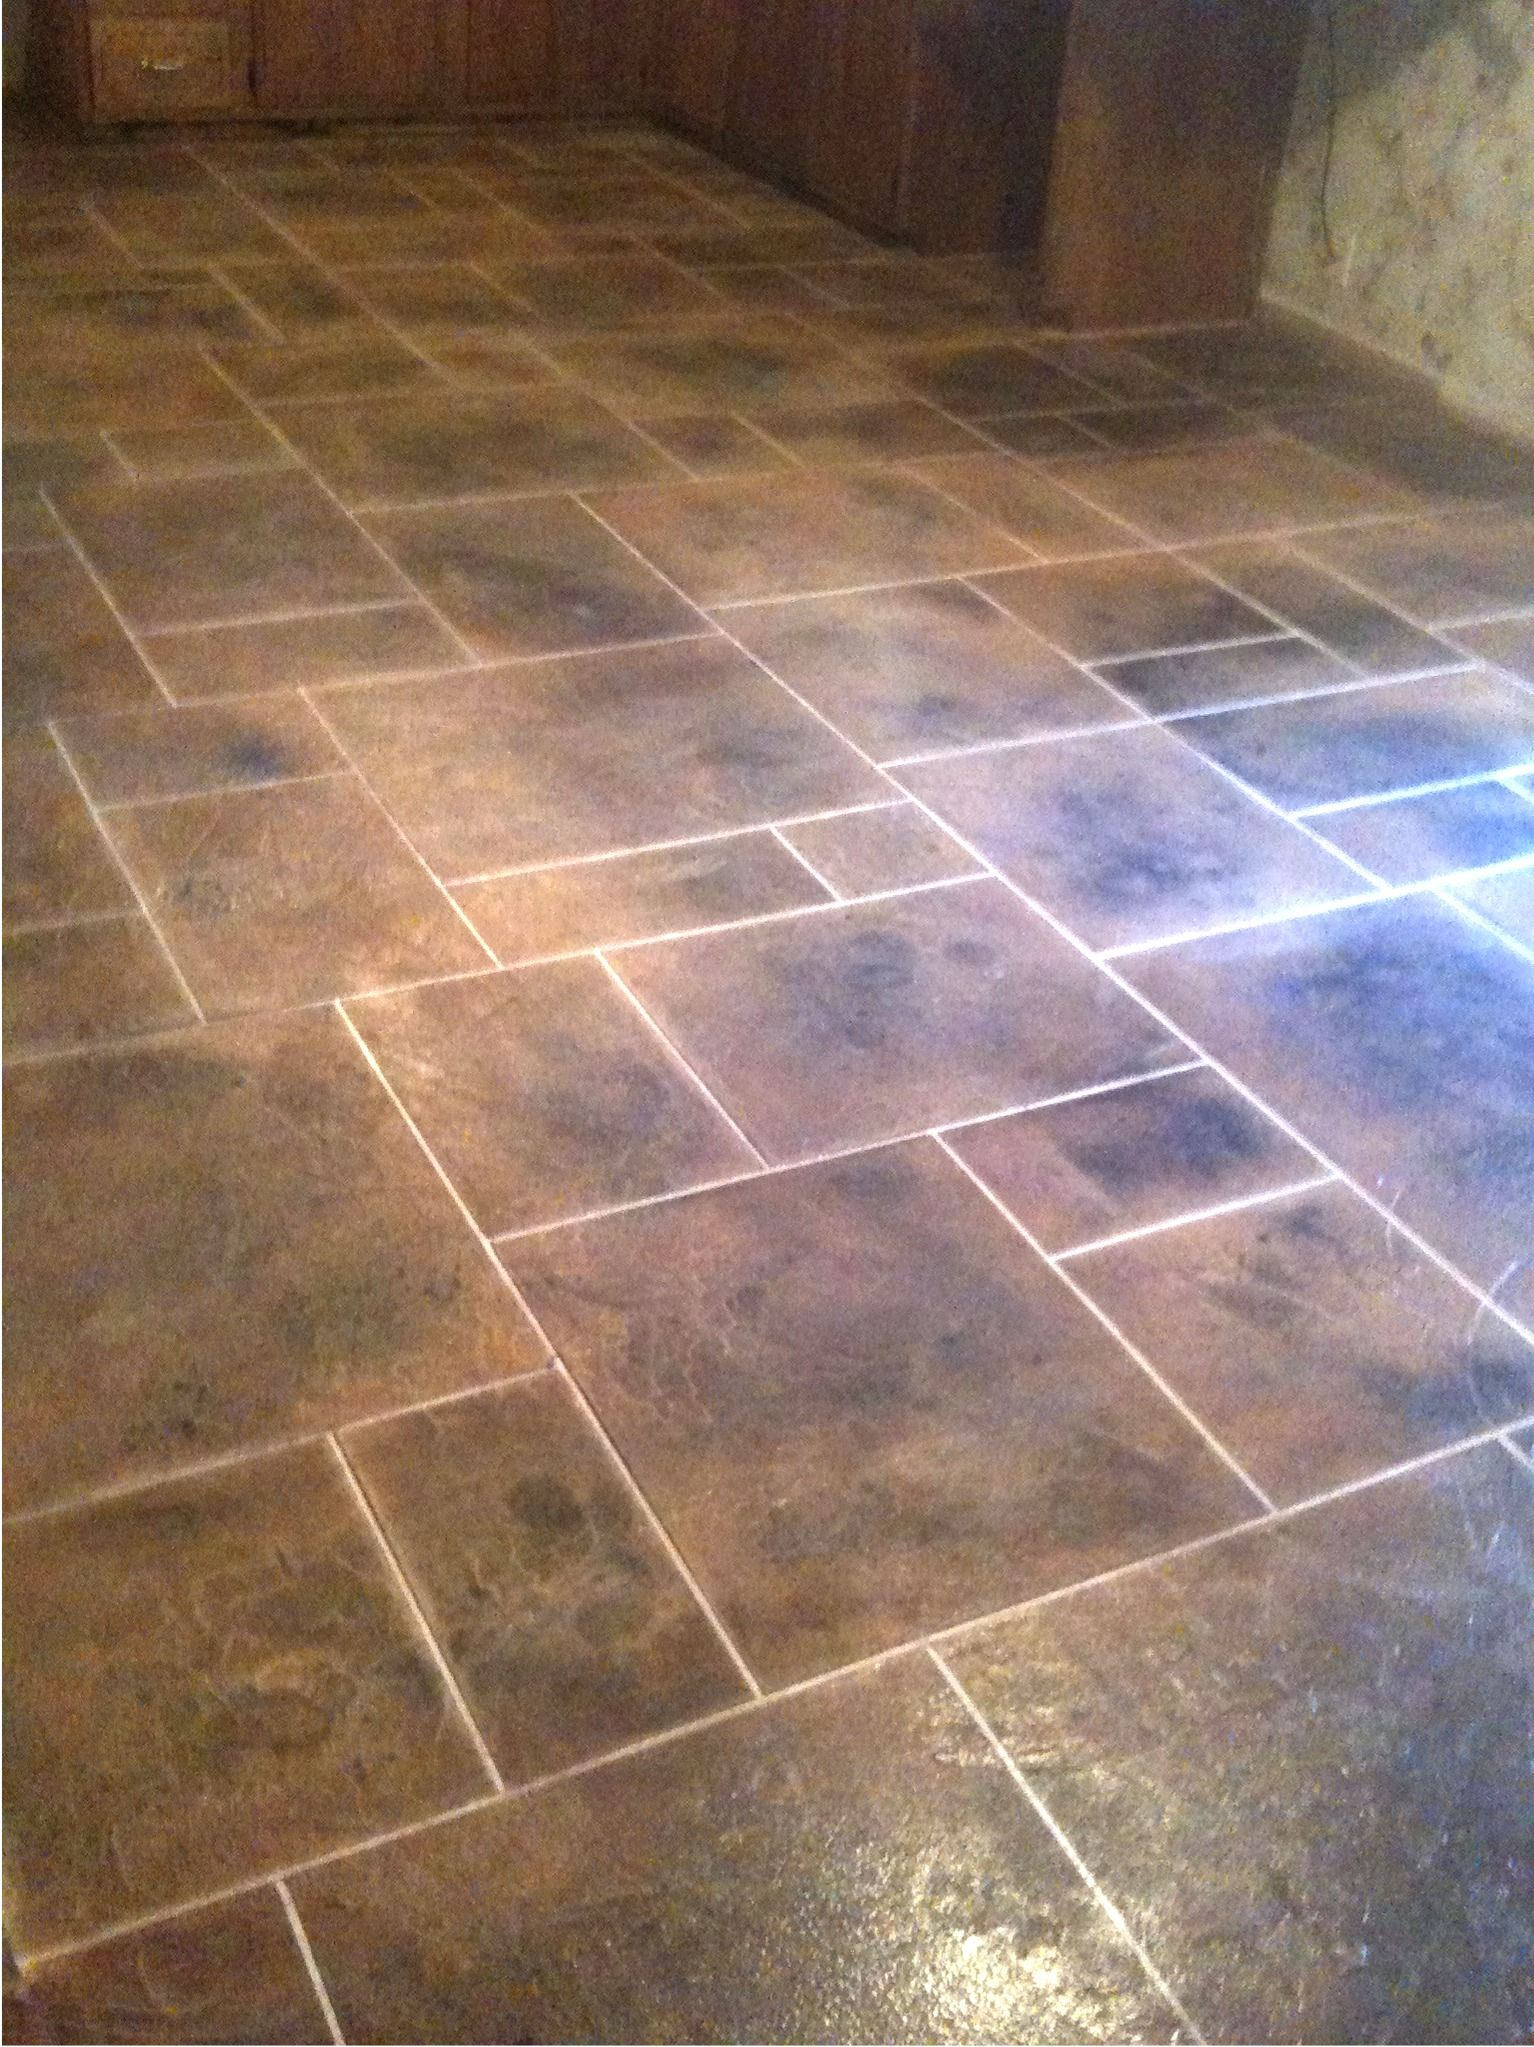 Kitchen floor tile patterns concrete overlay random pattern kitchen floor tile patterns concrete overlay random pattern stone tile kitchen floor dailygadgetfo Images